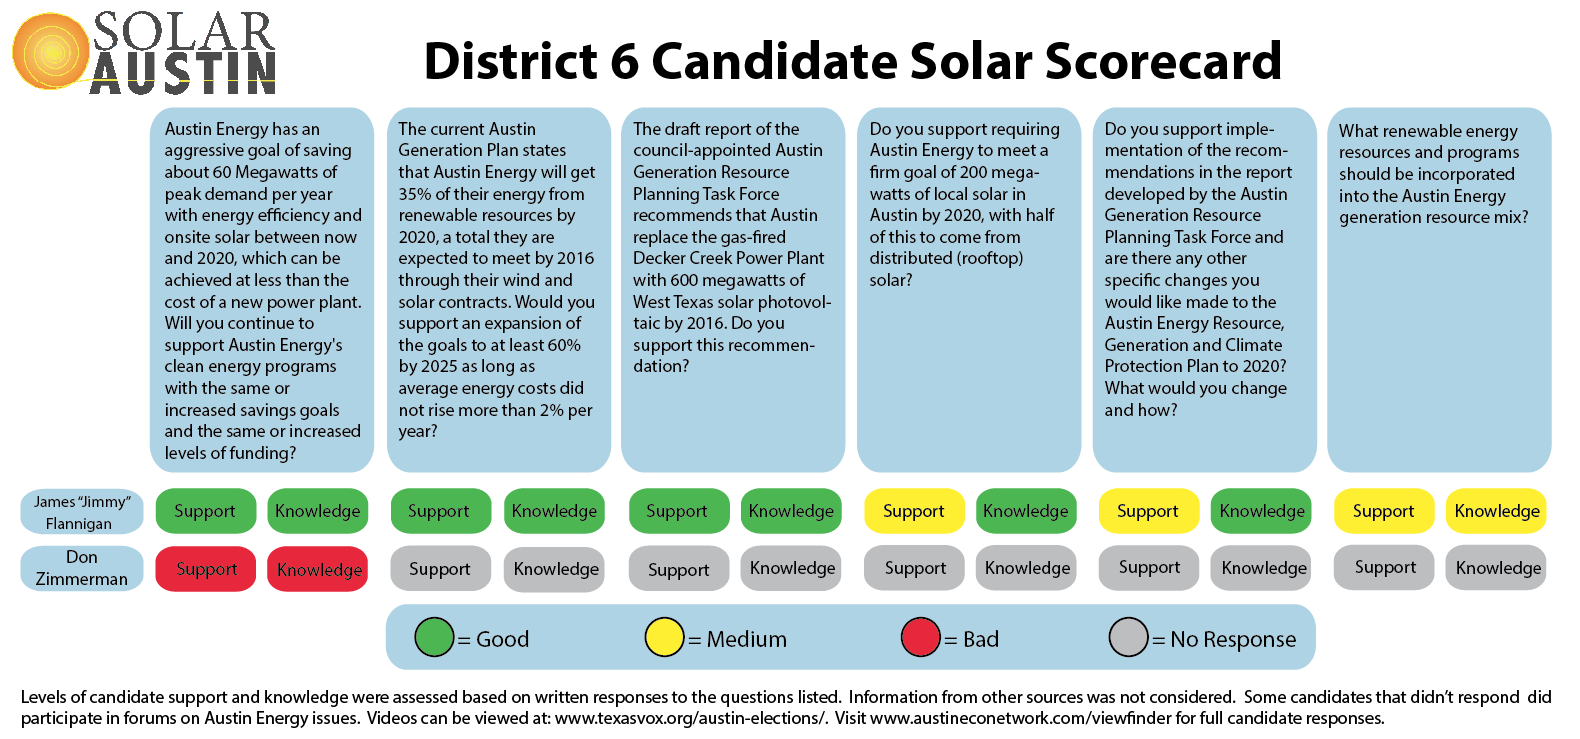 2014 Solar Austin Council District 6 Candidate Solar Scorecard - Runoffs